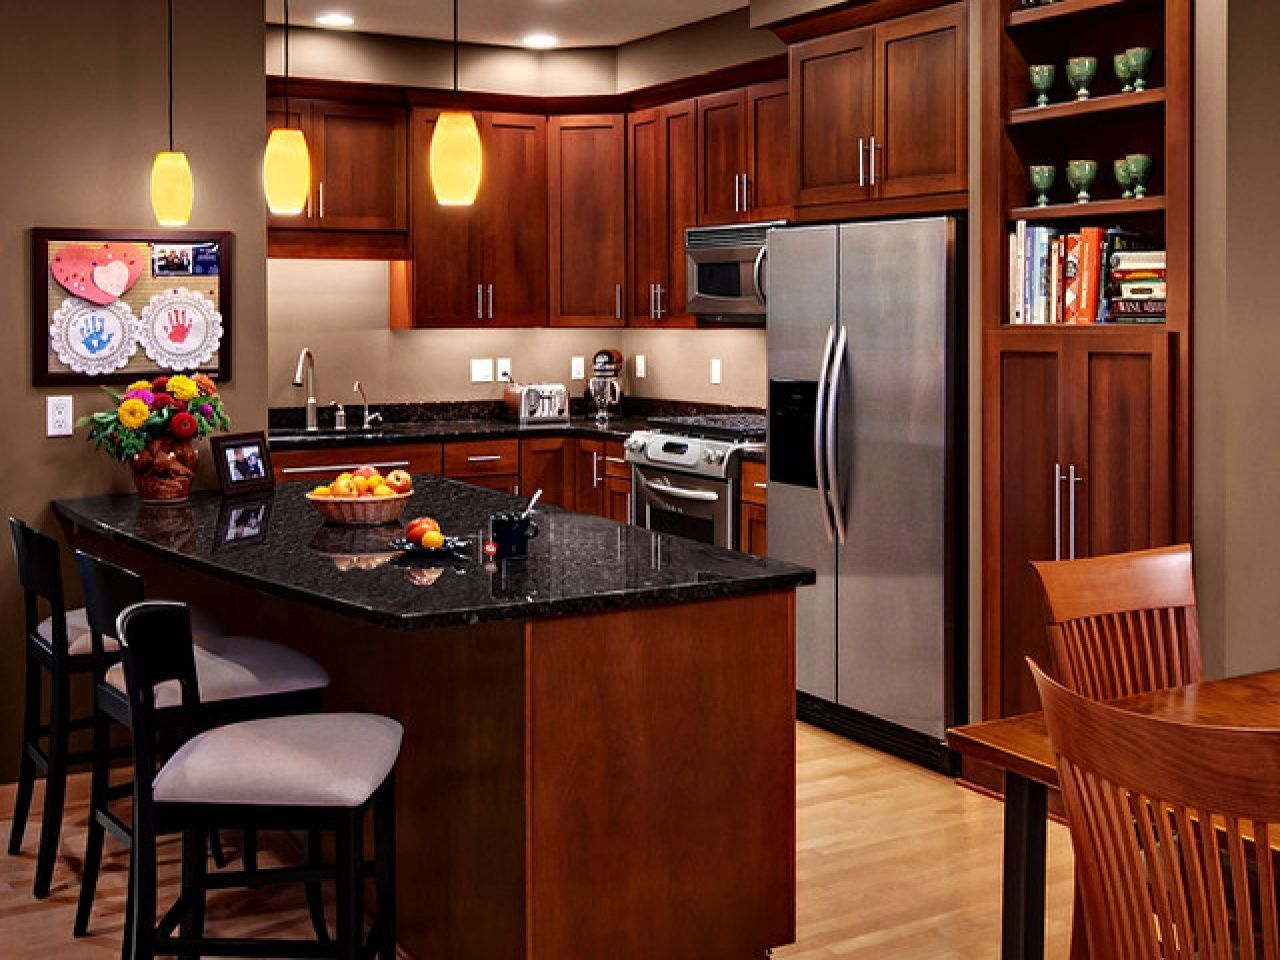 Cherry Wood Kitchen Cabinets Contemporary Black Cherry Kitchen Cabinets With Granite Counte Cherry Cabinets Kitchen Cherry Wood Kitchen Cabinets Classy Kitchen